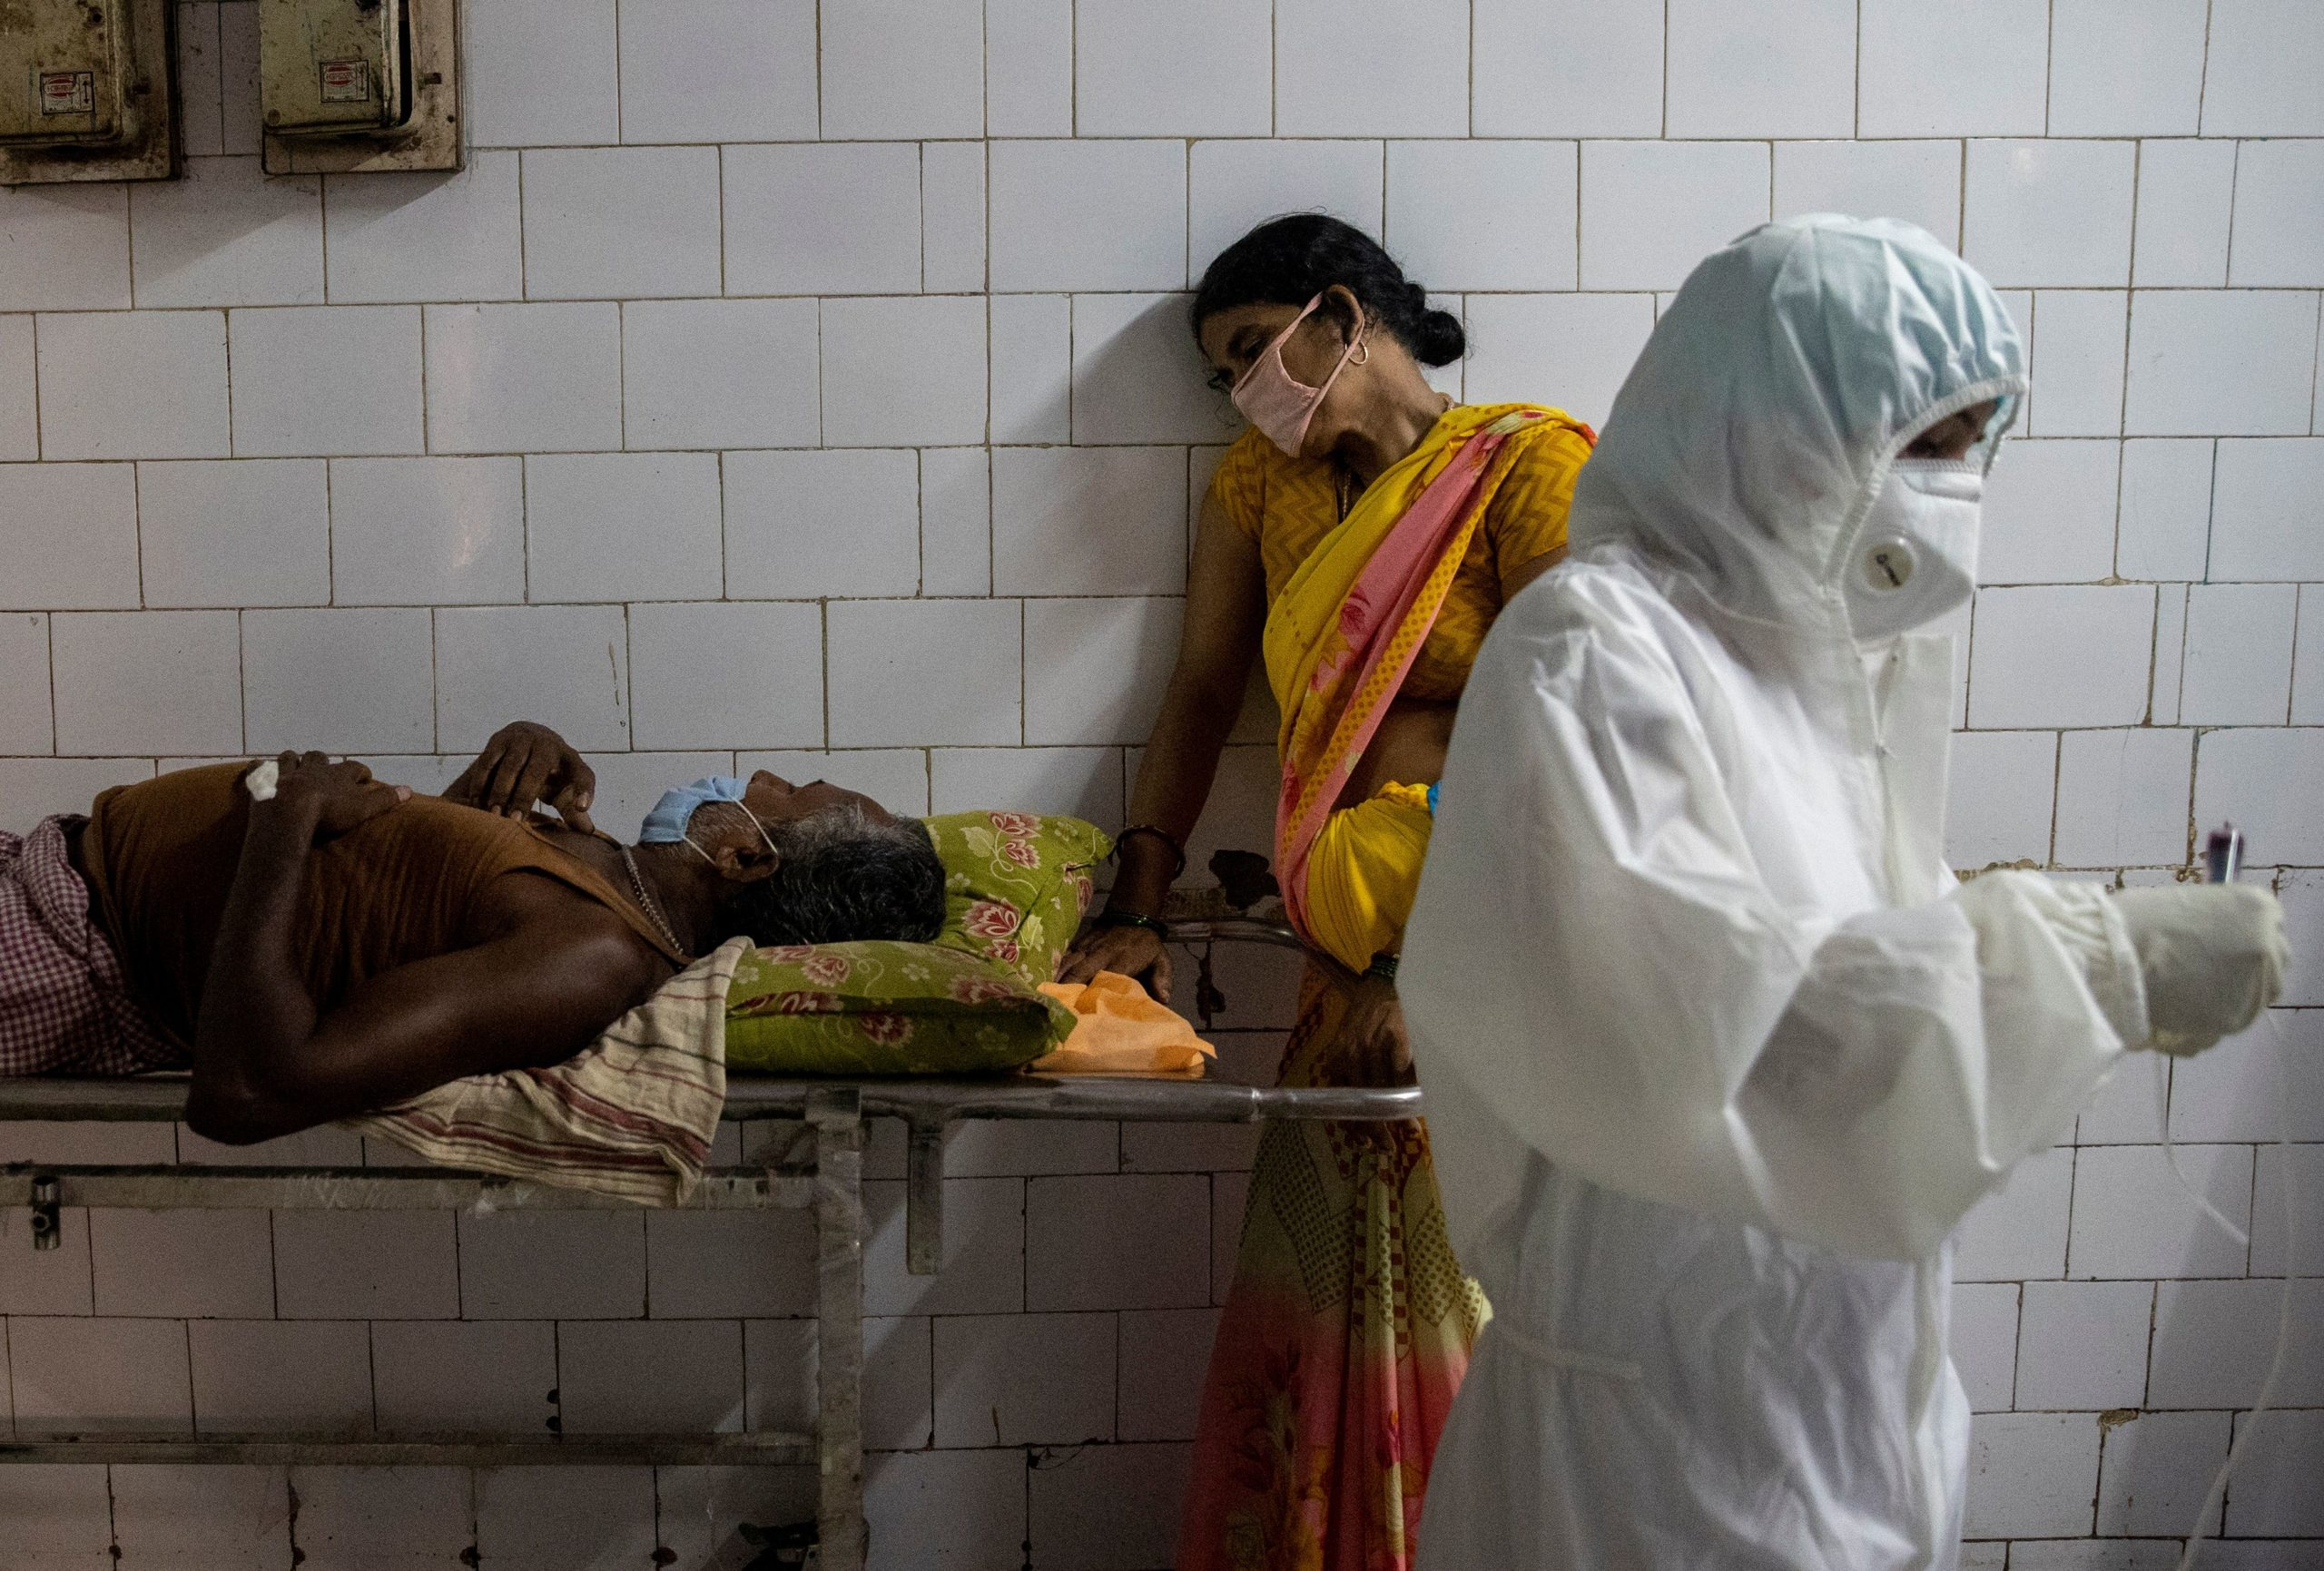 A woman leans against a stretcher holding her husband in the corridor of the emergency ward of Jawahar Lal Nehru Medical College and Hospital, during the coronavirus disease (COVID-19) outbreak, in Bhagalpur, in the eastern state of Bihar, India, July 27, 2020. REUTERS/Danish Siddiqui